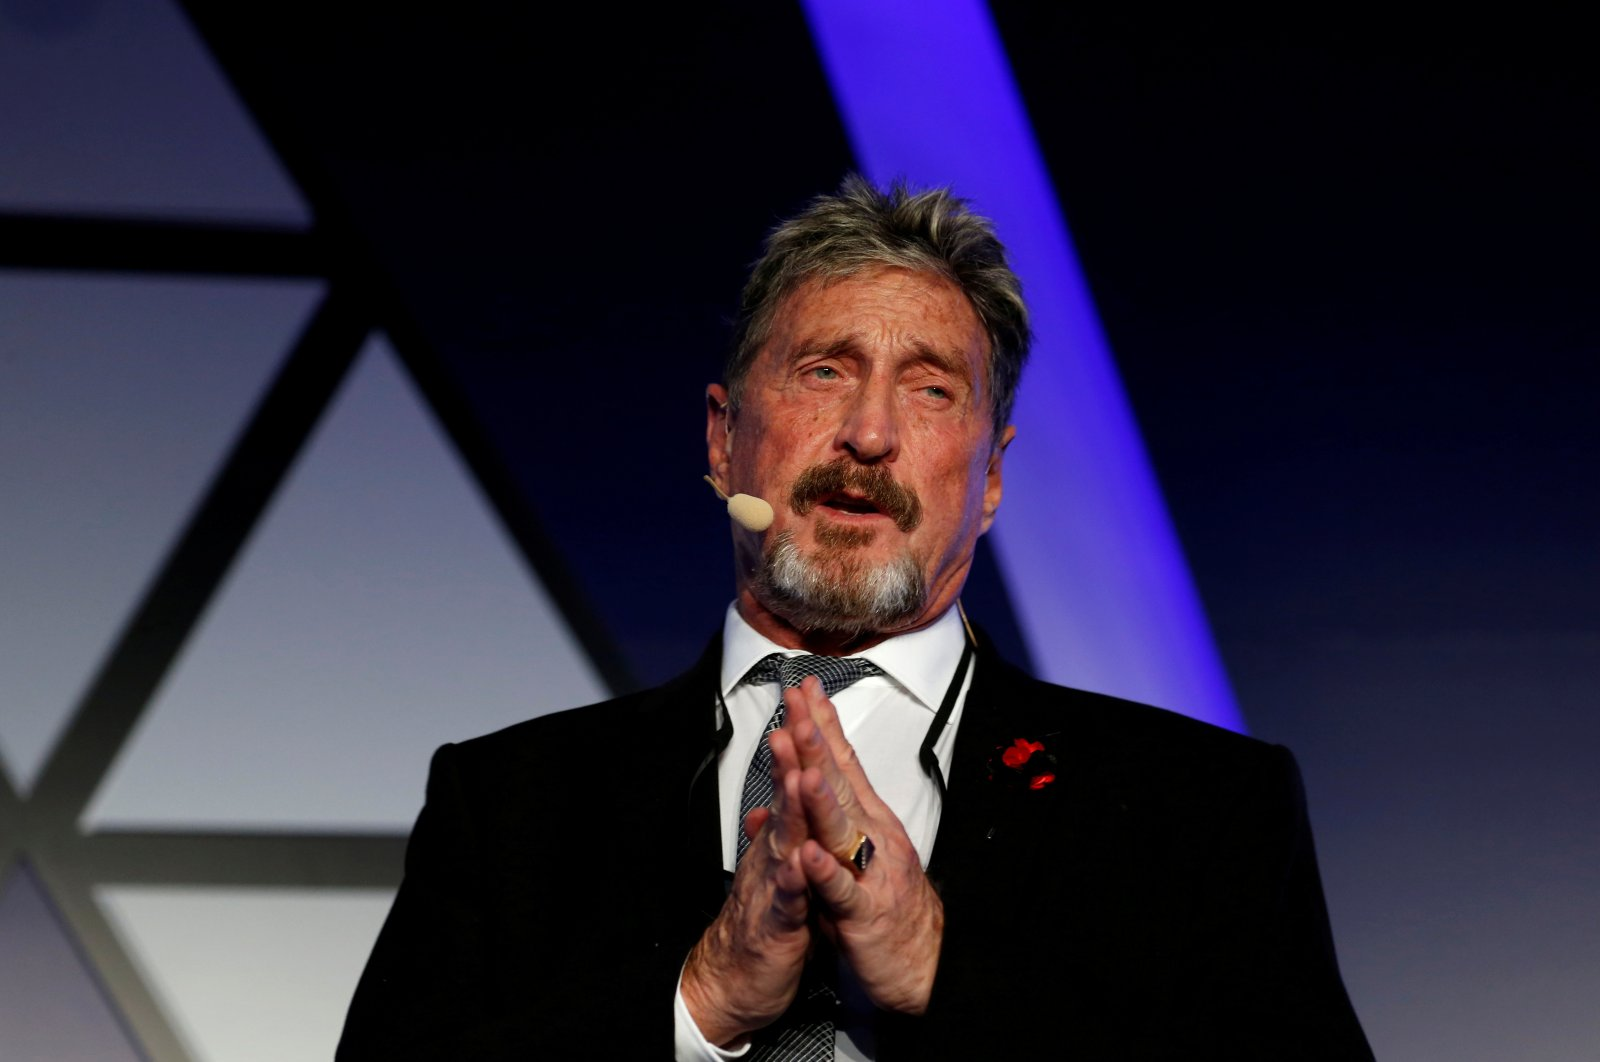 John McAfee, co-founder of McAfee Crypto Team, CEO of Luxcore and founder of McAfee Antivirus, speaks at the Malta Blockchain Summit in St. Julian's, Malta Nov. 1, 2018. (Reuters Photo)